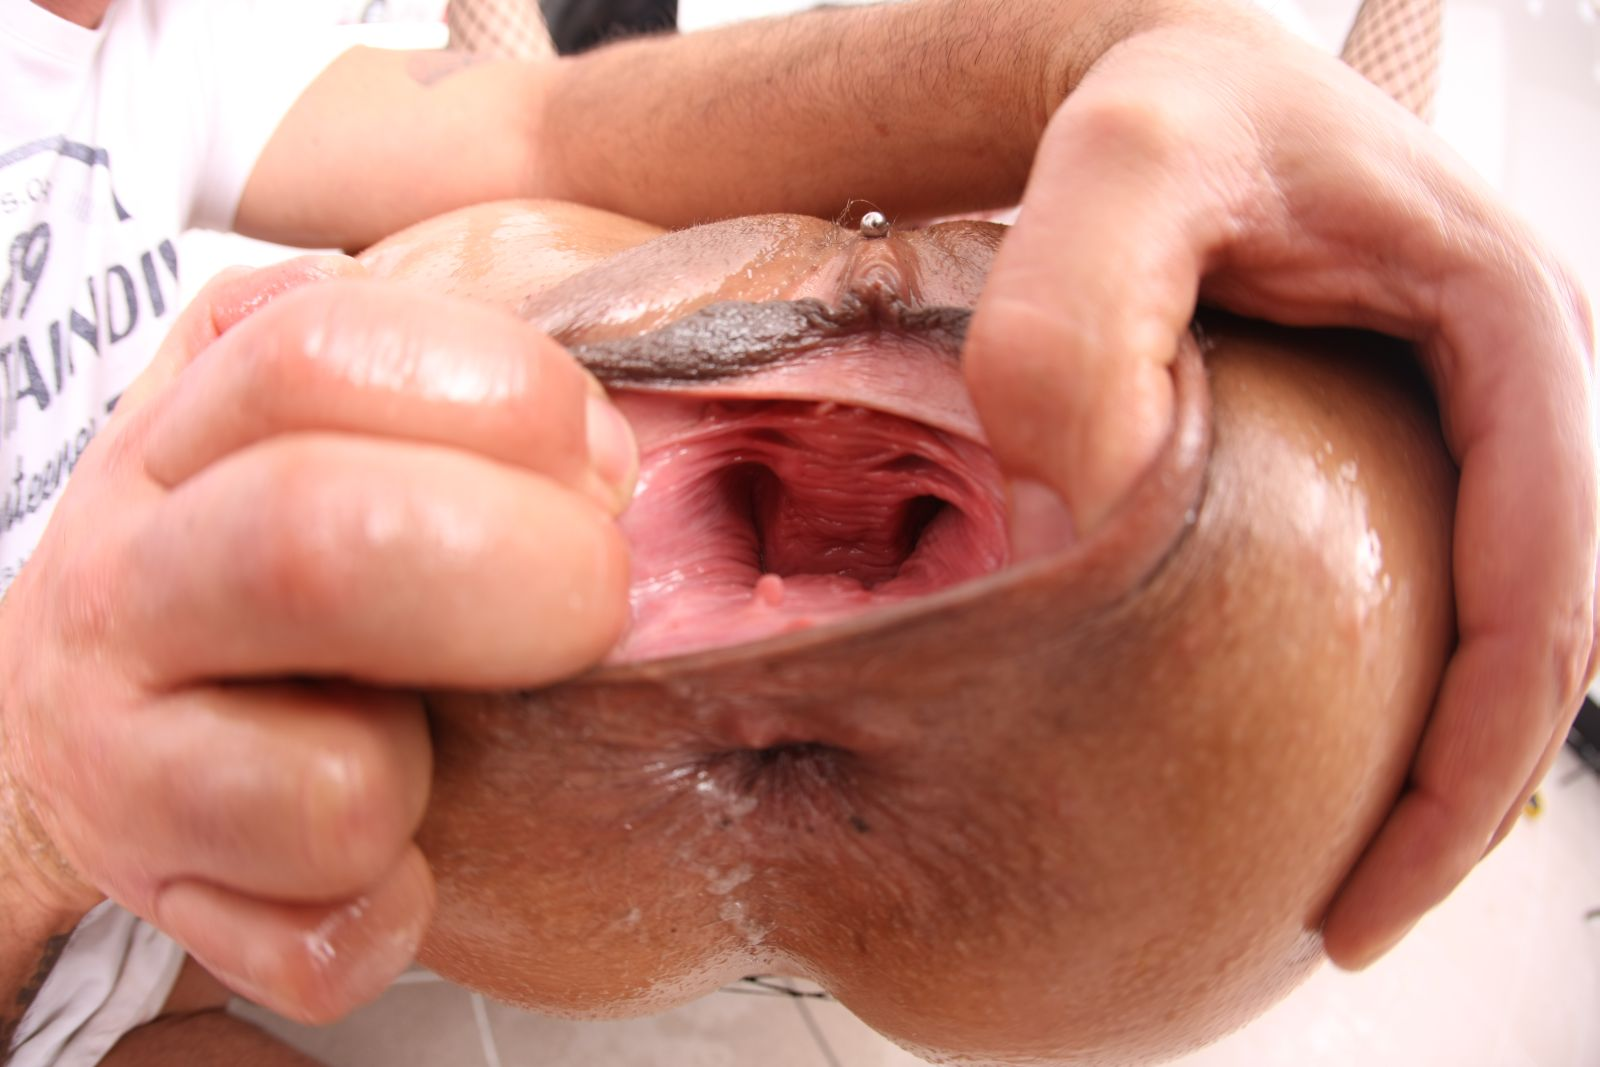 Vaginal creampie fist